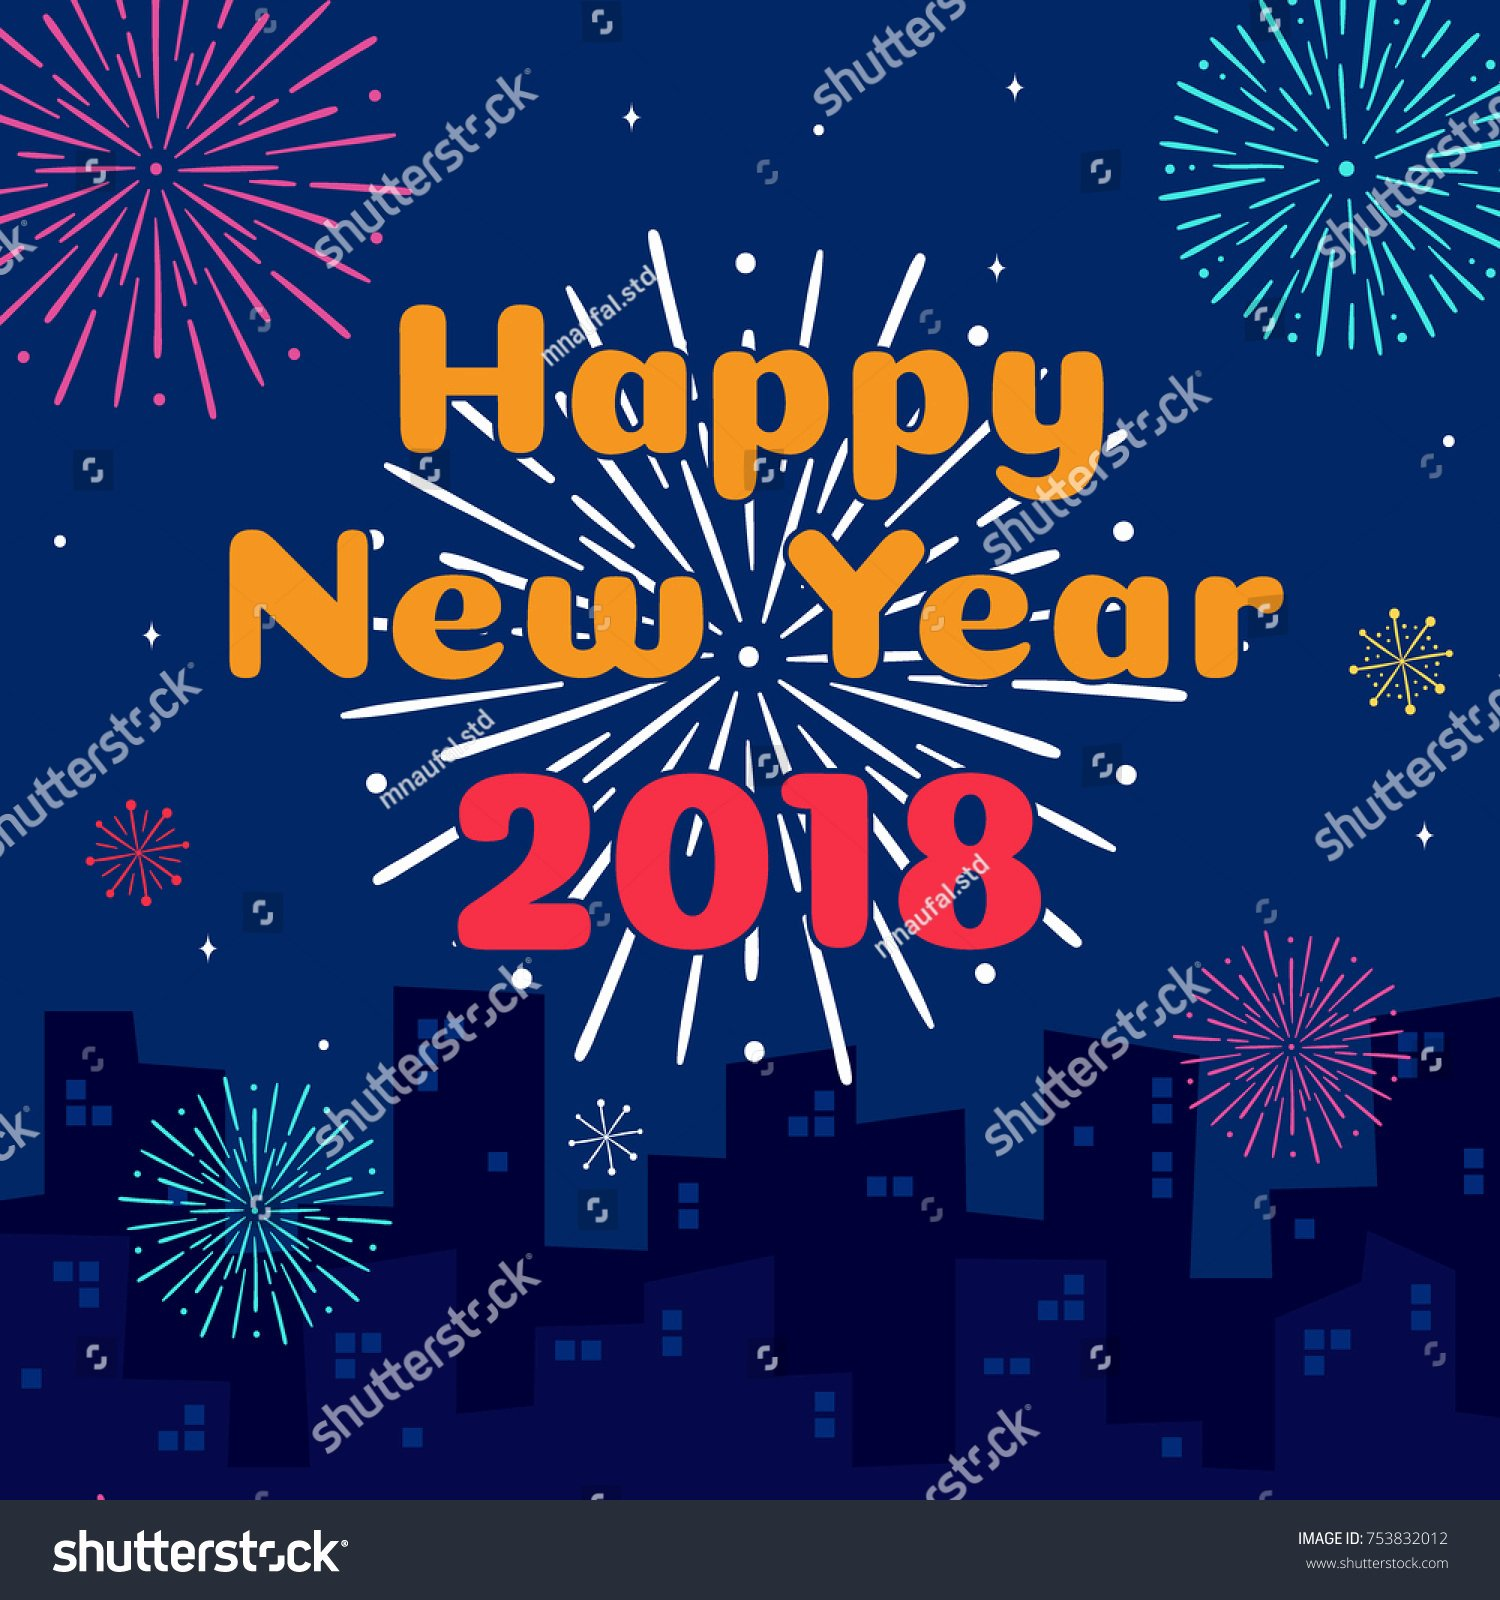 New Year Card Template New Happy New Year 2018 Card Template Stock Vector